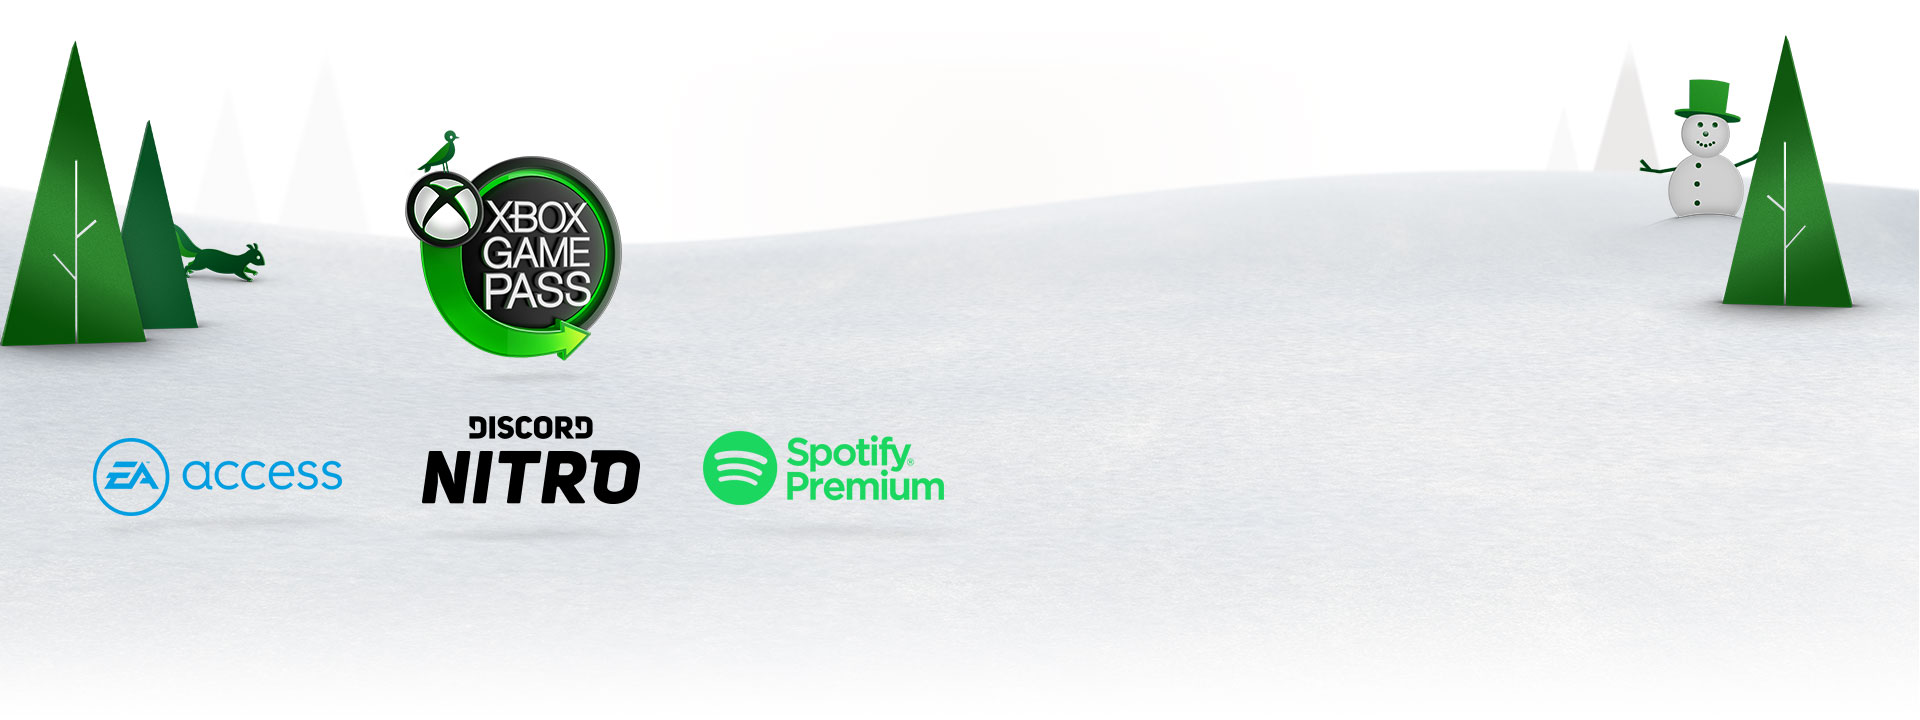 Xbox Game Pass, EA Access, Discord Nitro, and Spotify logos in front of a snowy background with trees and animals